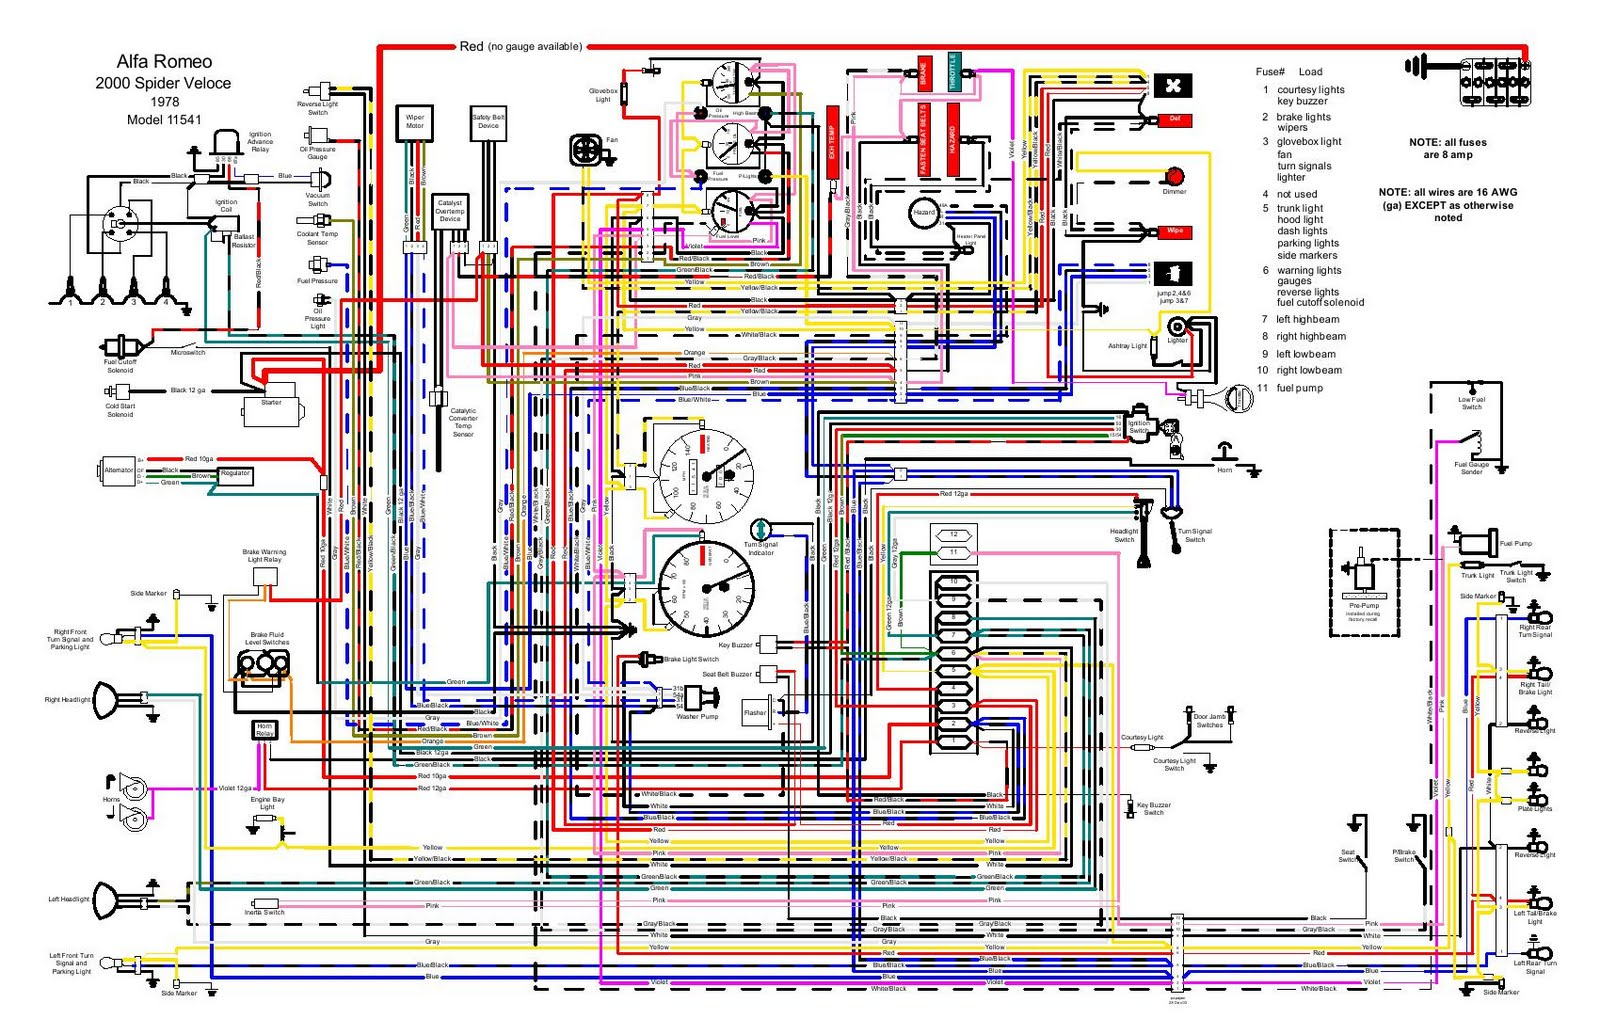 wiring diagram for 1978 alfa romeo spider CHaEWjz wiring diagrams cars readingrat net wiring schematics for cars at bayanpartner.co